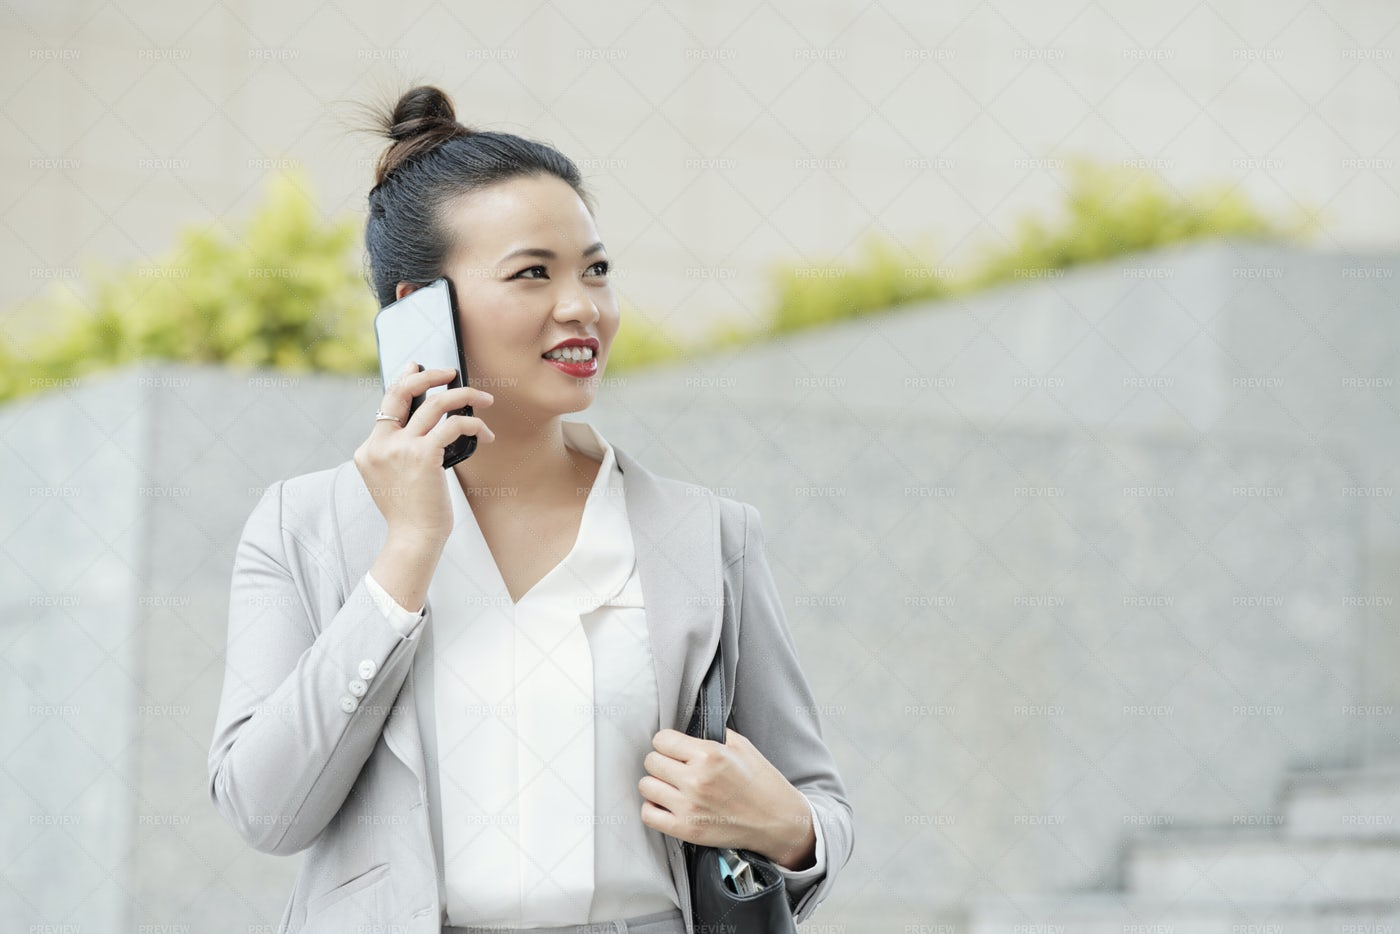 Young Business Lady Talking On Phone: Stock Photos